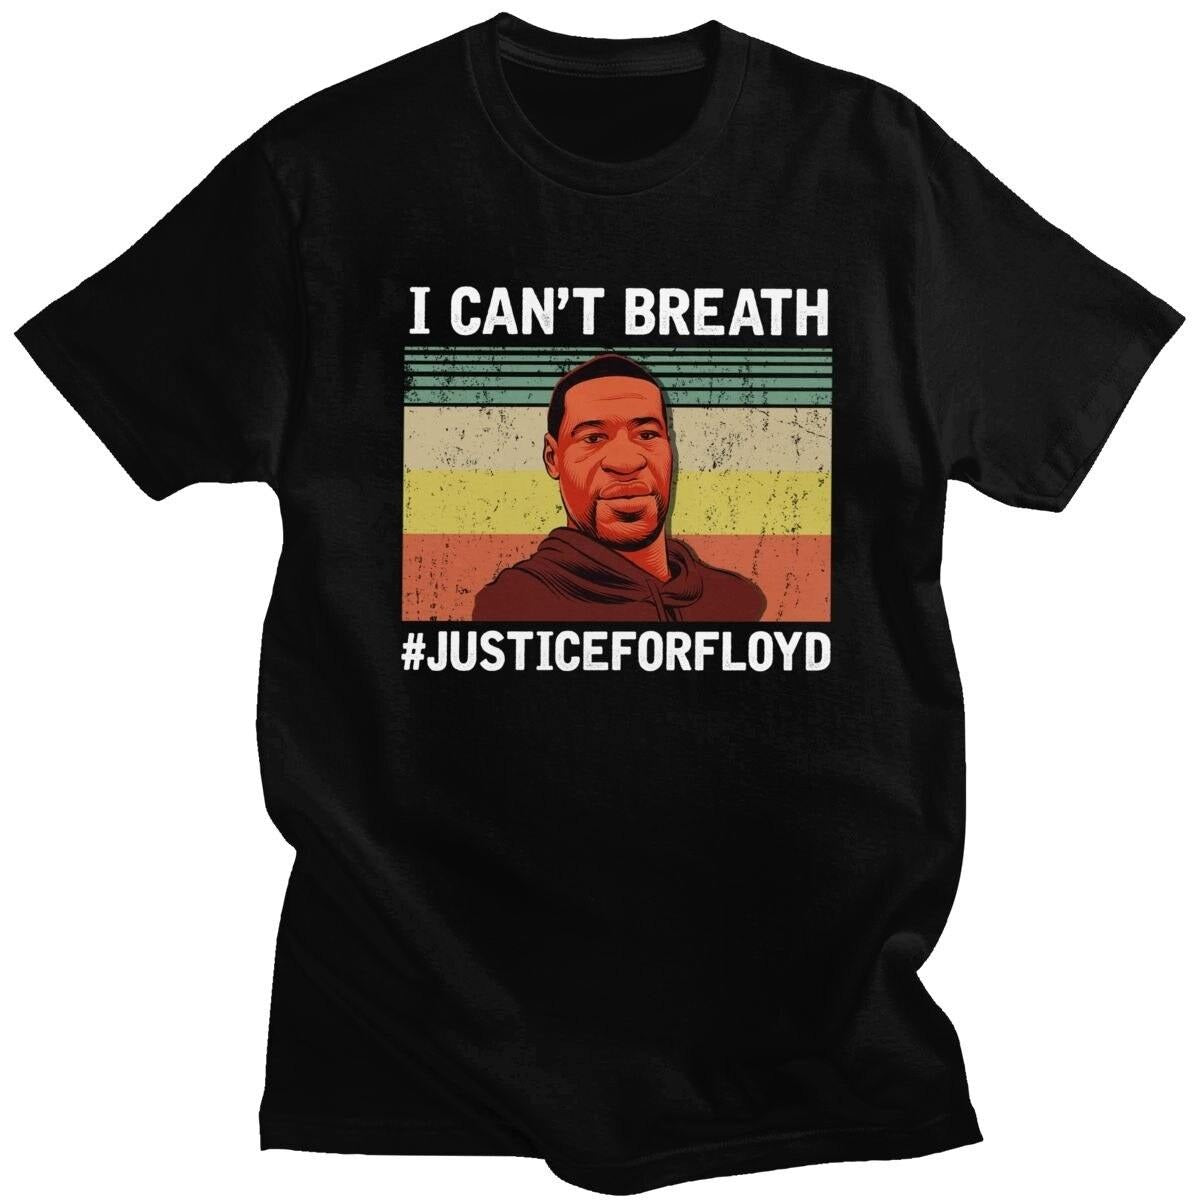 Retro Black Live Matter T Shirt Men 100% Cotton I Can't Breathe T-shirt Short Sleeve Justice For Floyd Tee Tops Fit Clothing - rastafarimarket